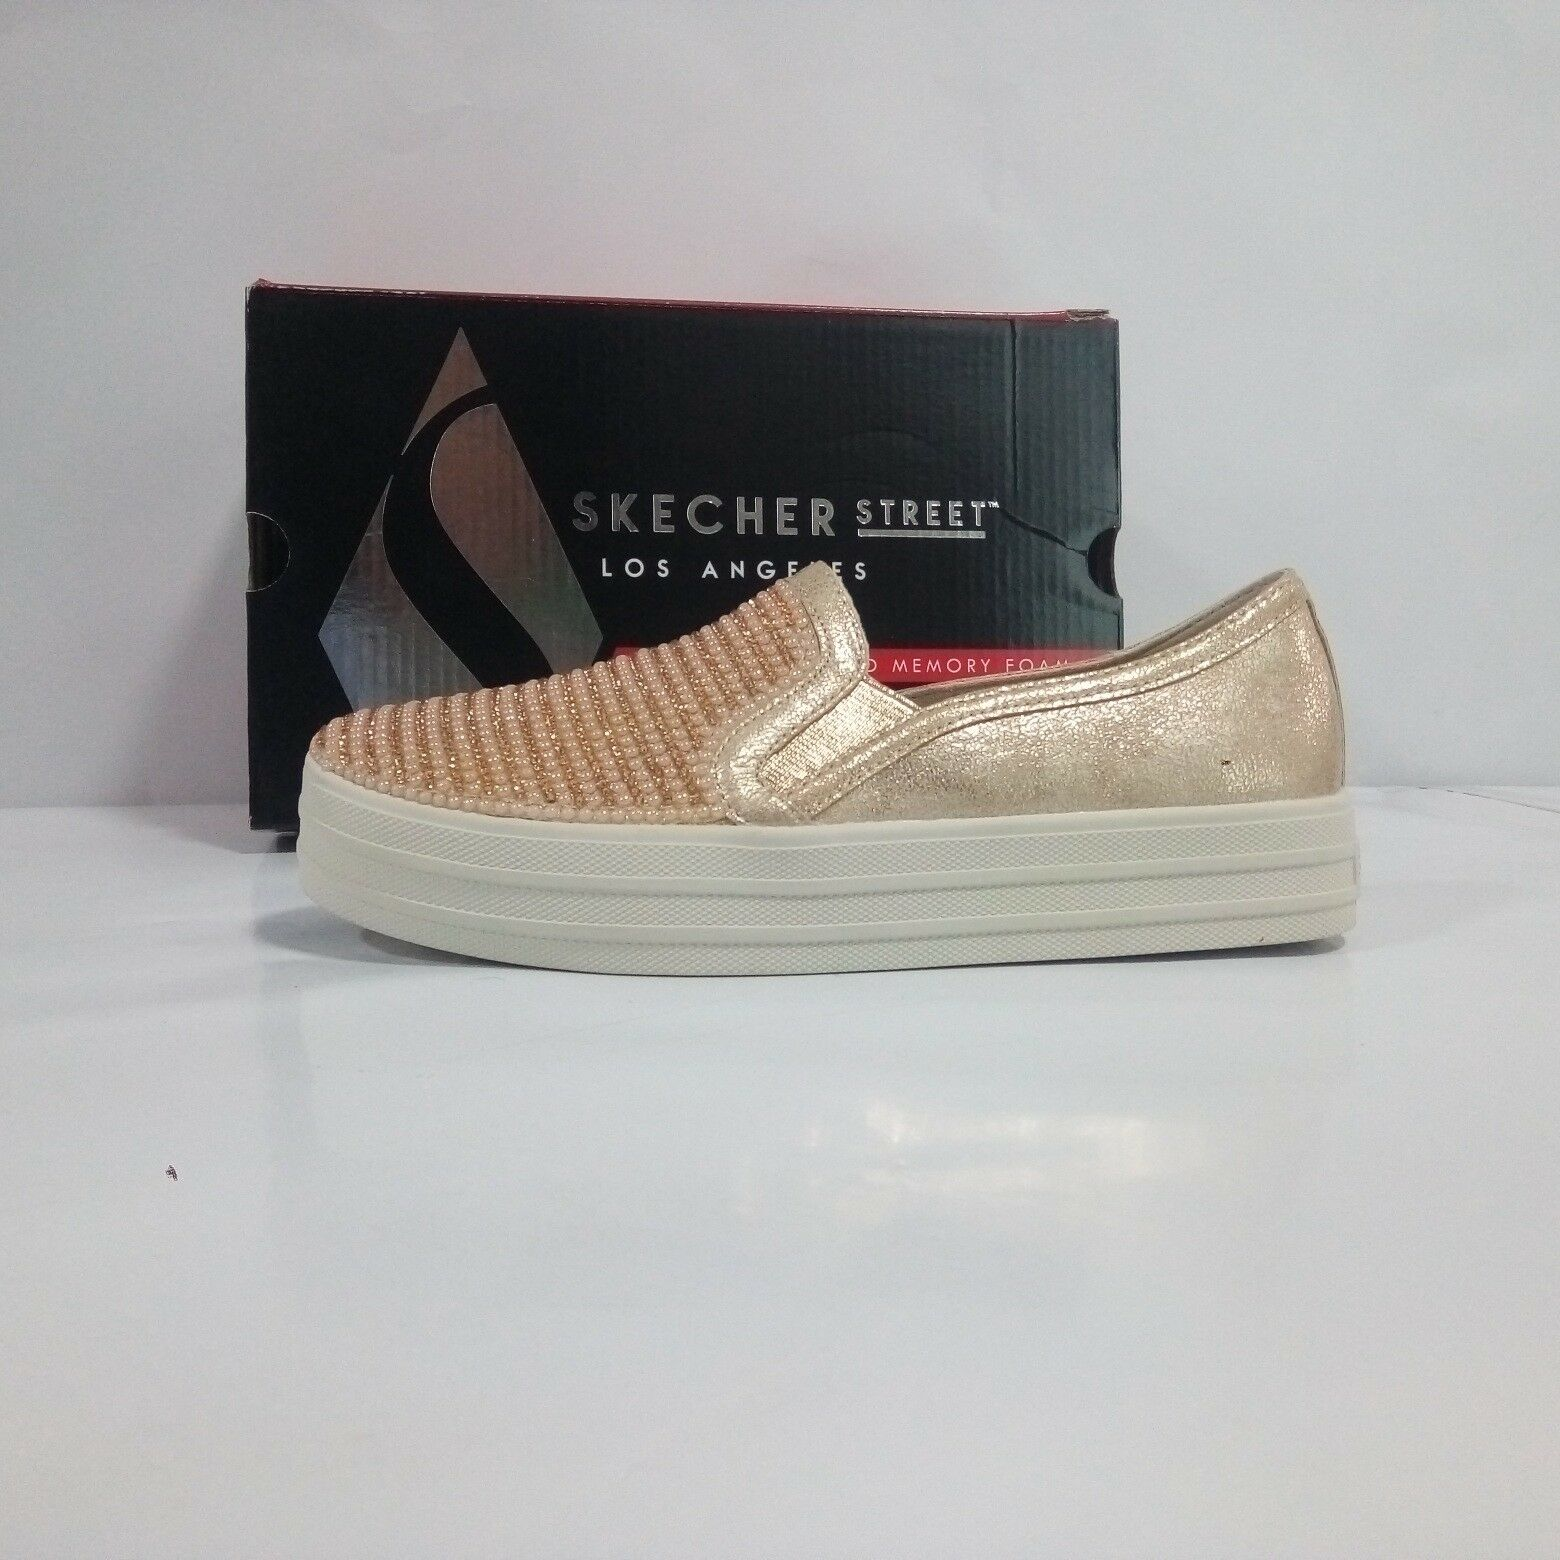 Scarpe Skechers Donna - Double Up Shiny Dancer Dancer Dancer - rosa Cipria - 801 025feb